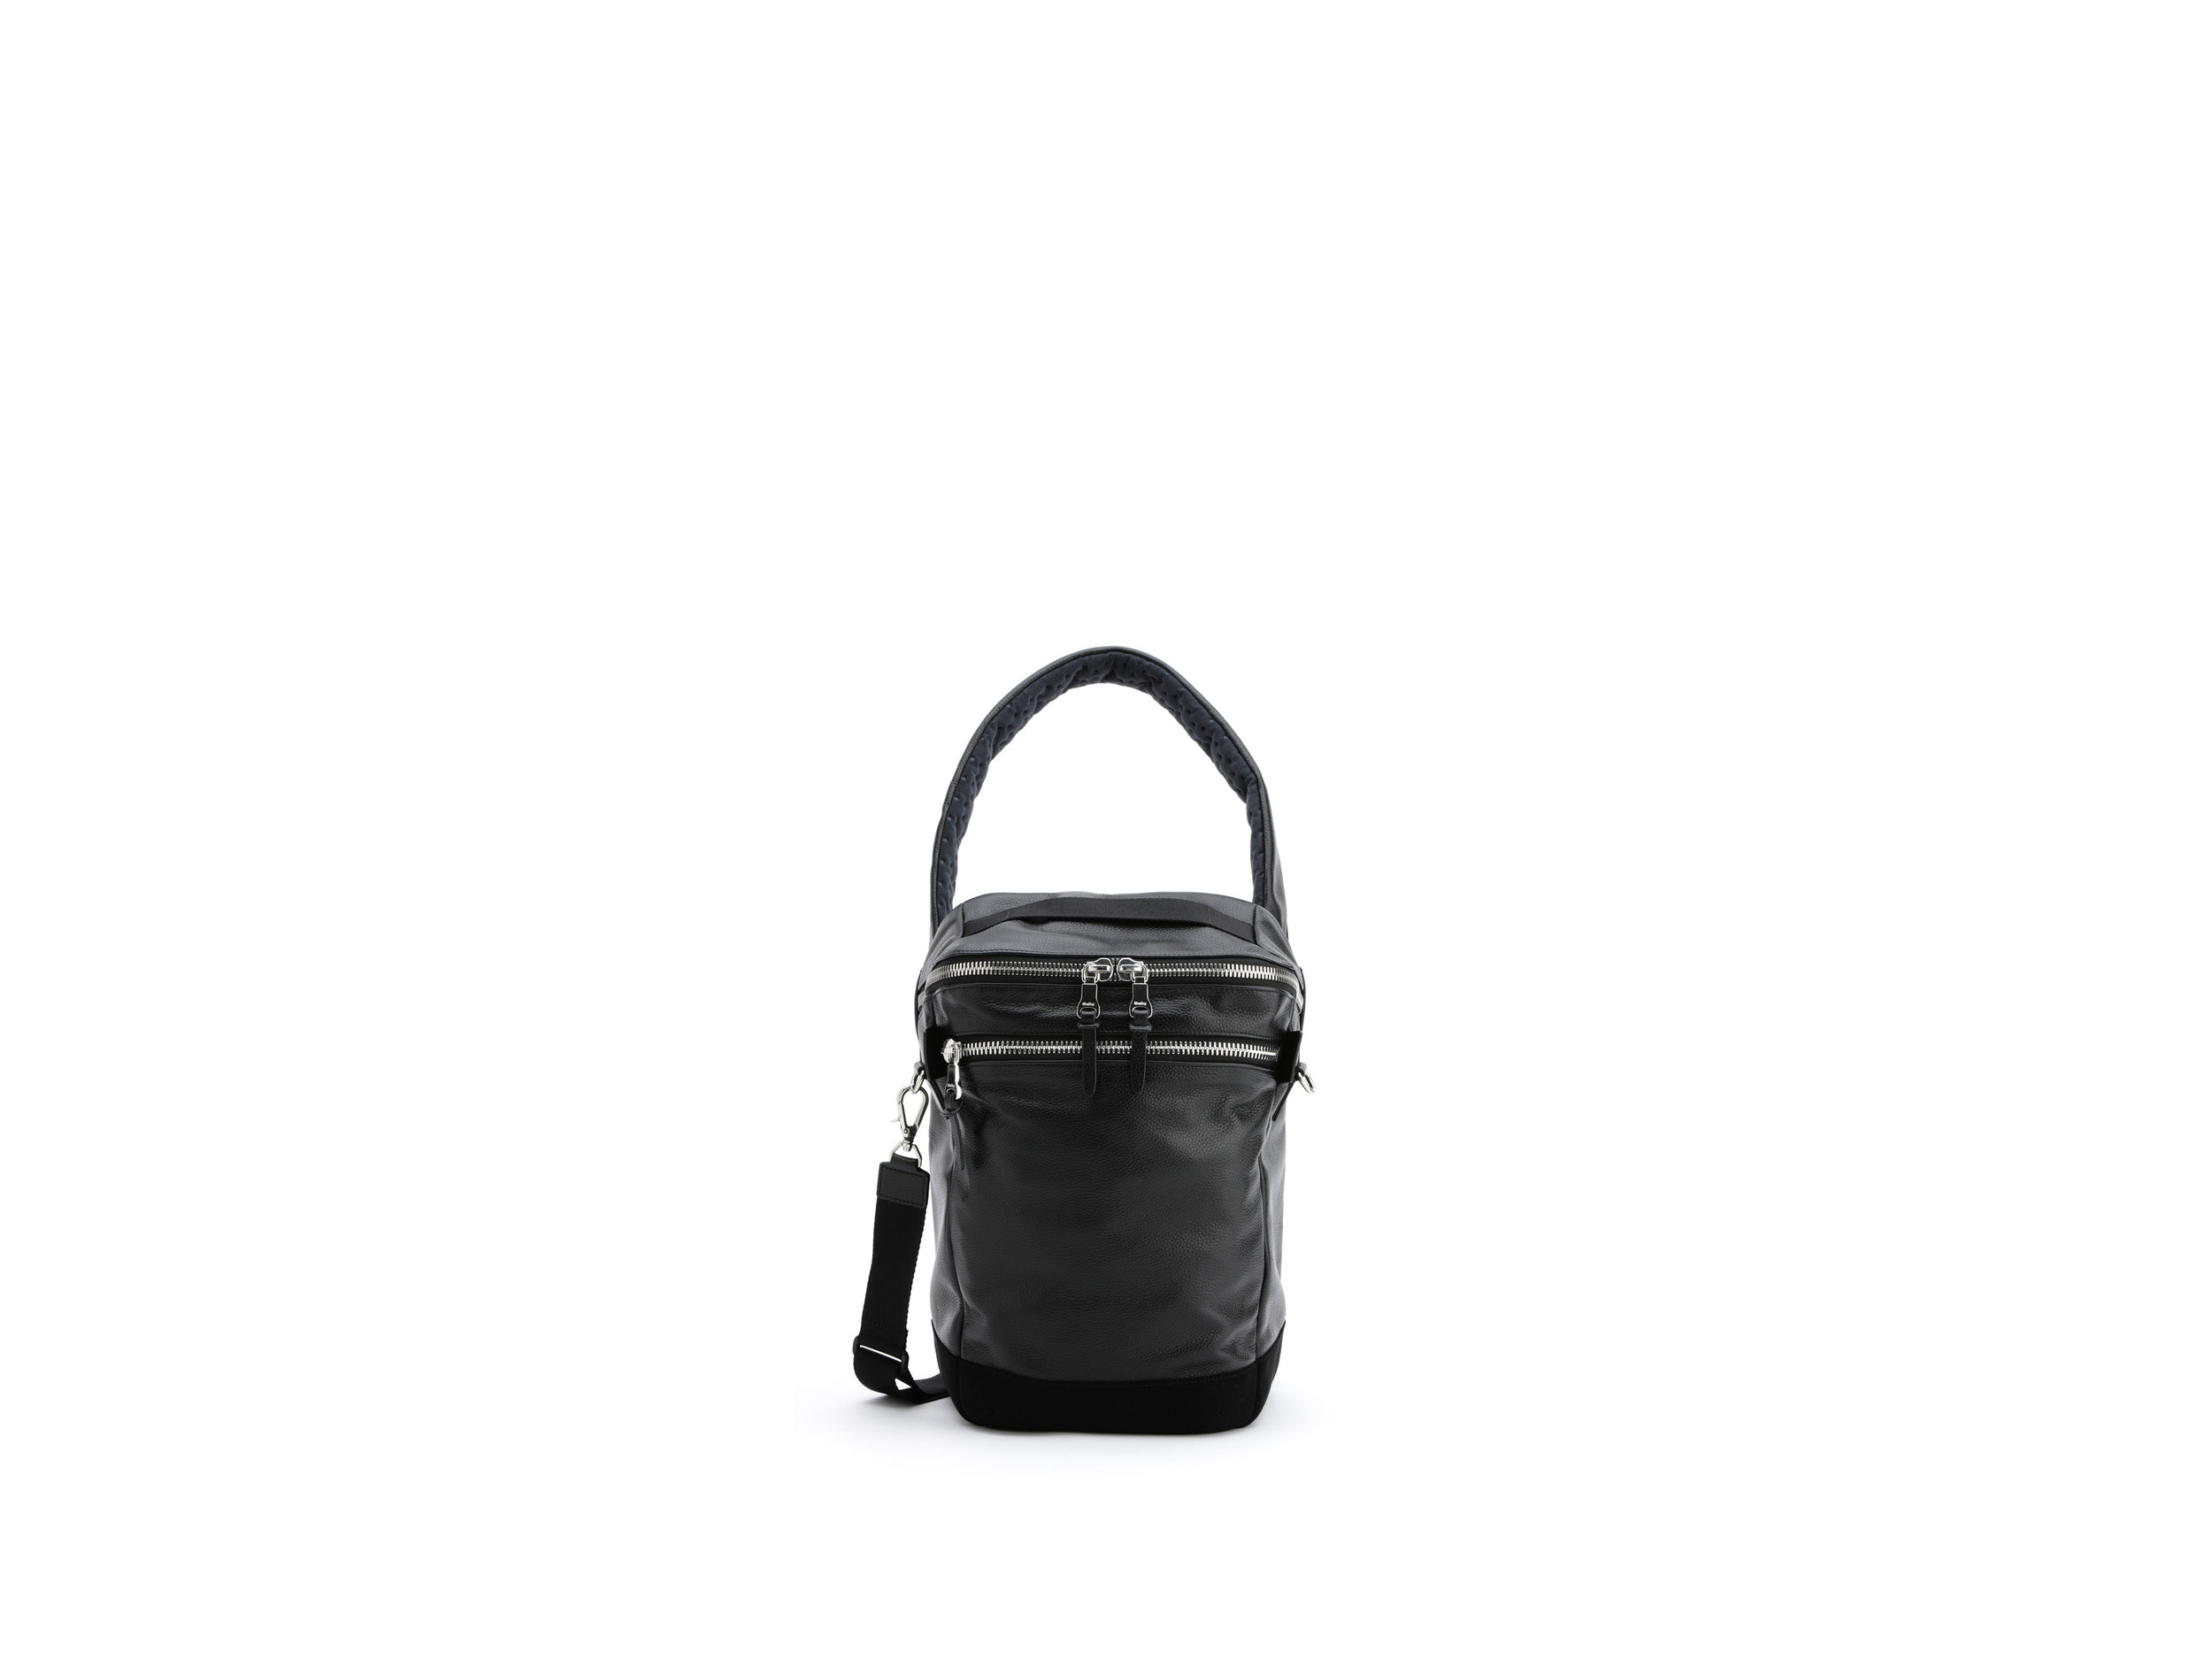 UELI W:250 H:380 D:140 mm JPY 65,000 + TAX BLACK